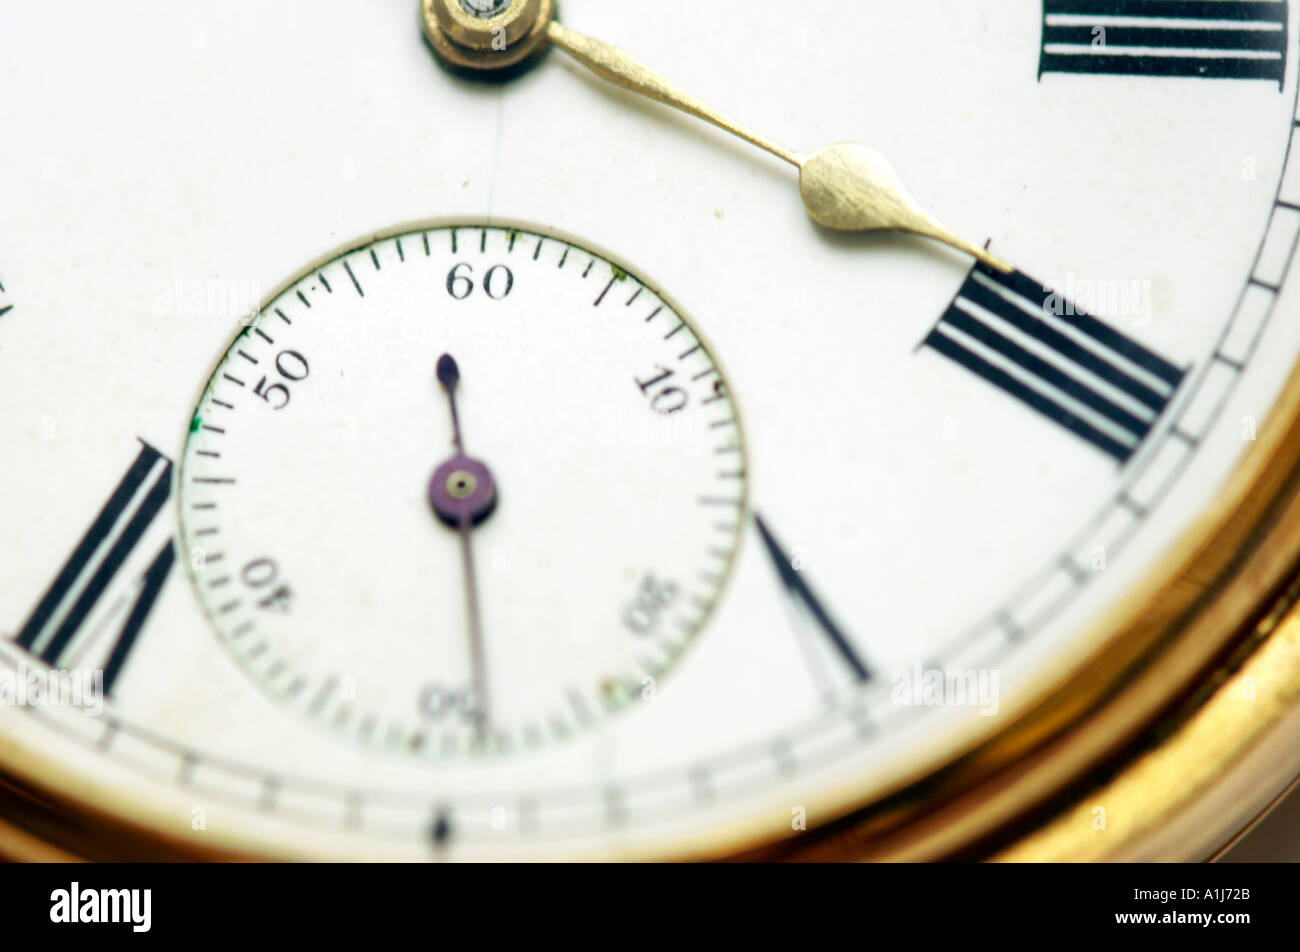 Close up of an old pocket watch - Stock Image